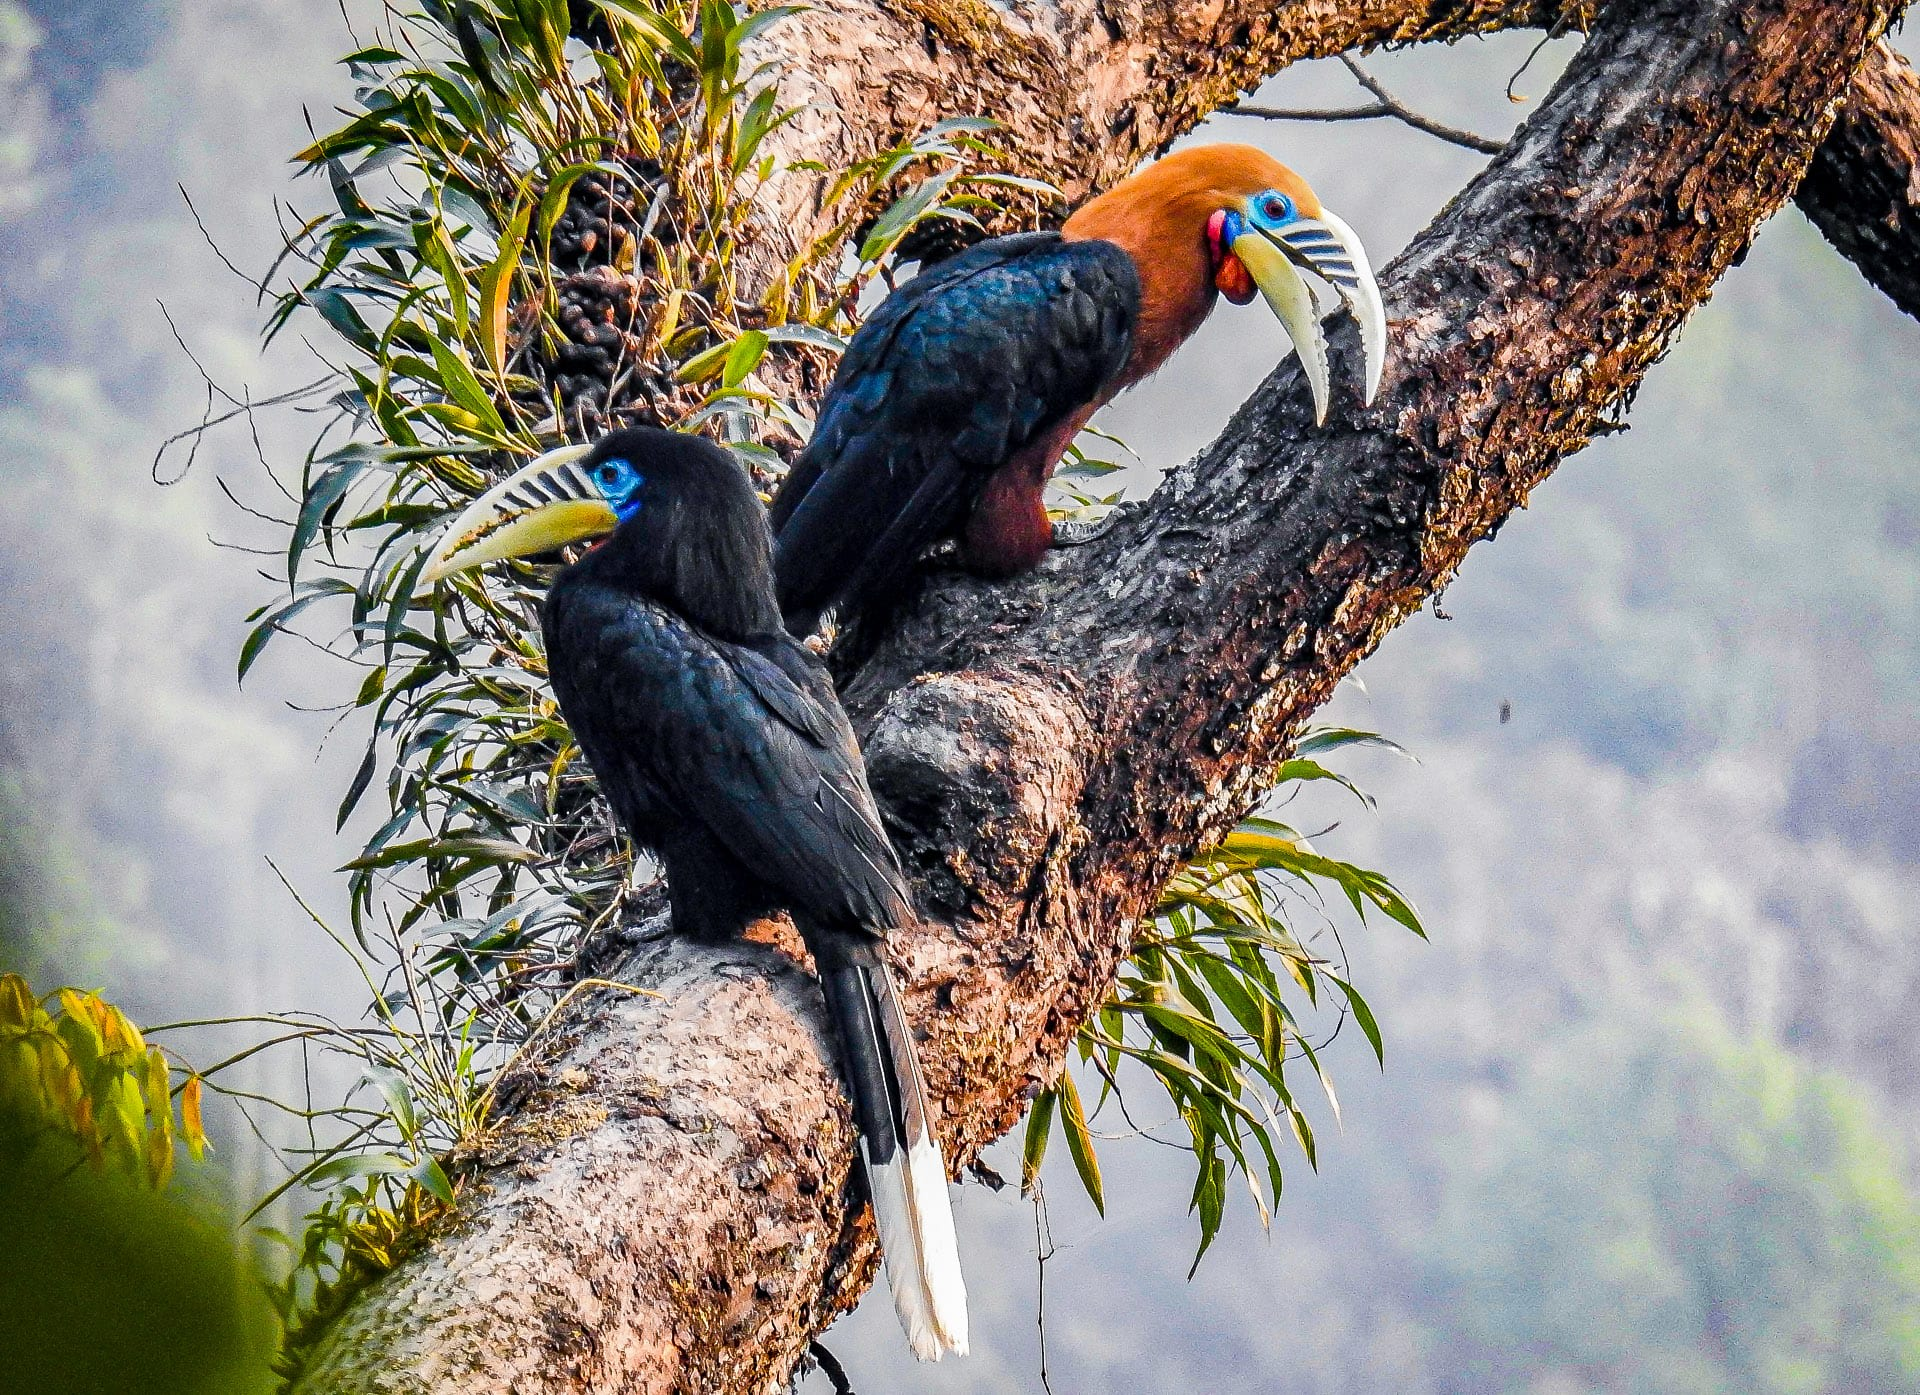 Rufous-necked hornbills are sexually dimorphic. Males sport reddish-brown plumage on the head, neck and underparts, while the female mostly wears black. Photo: Parag Gurung